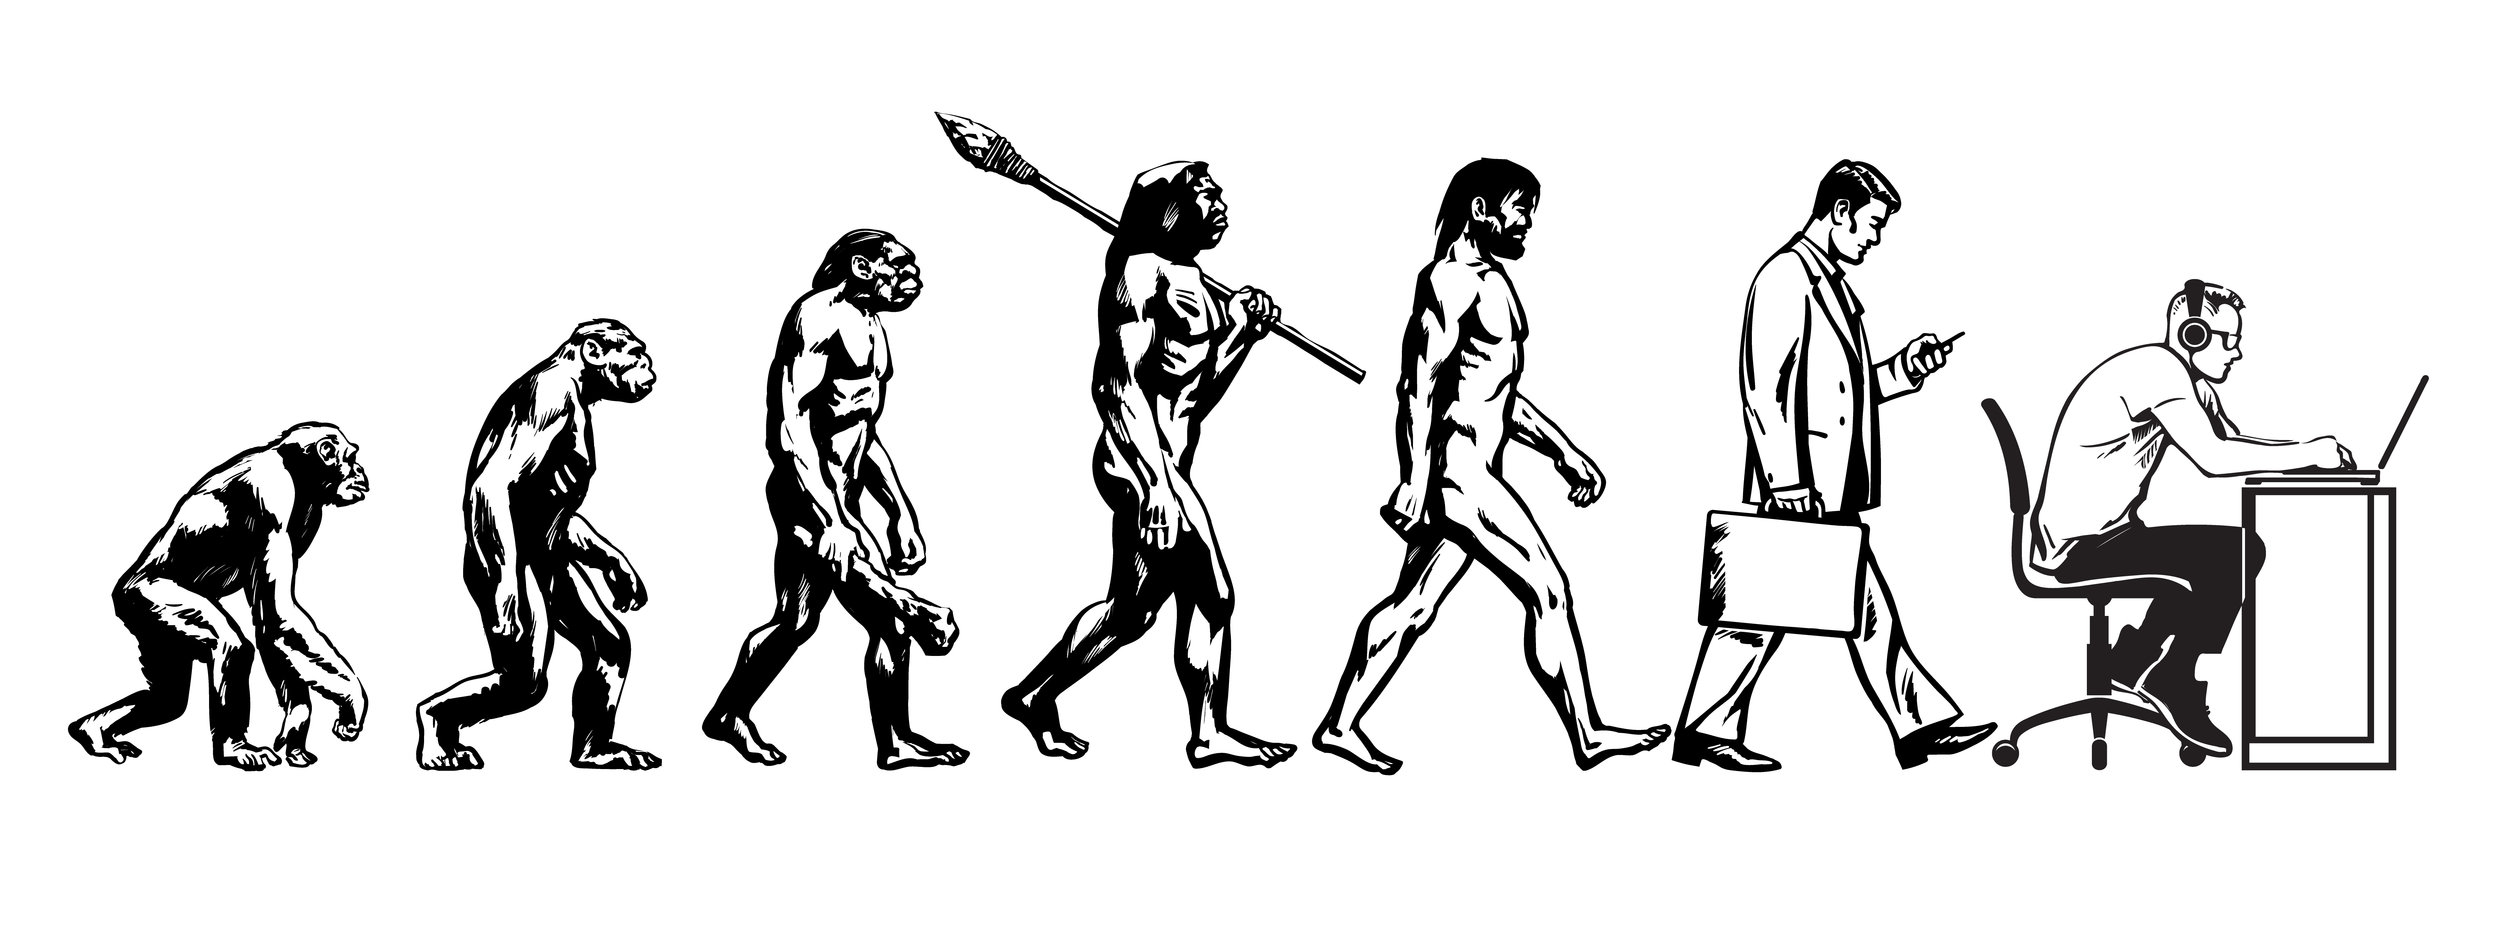 We've come a long way since being bent over apes, haven't we?